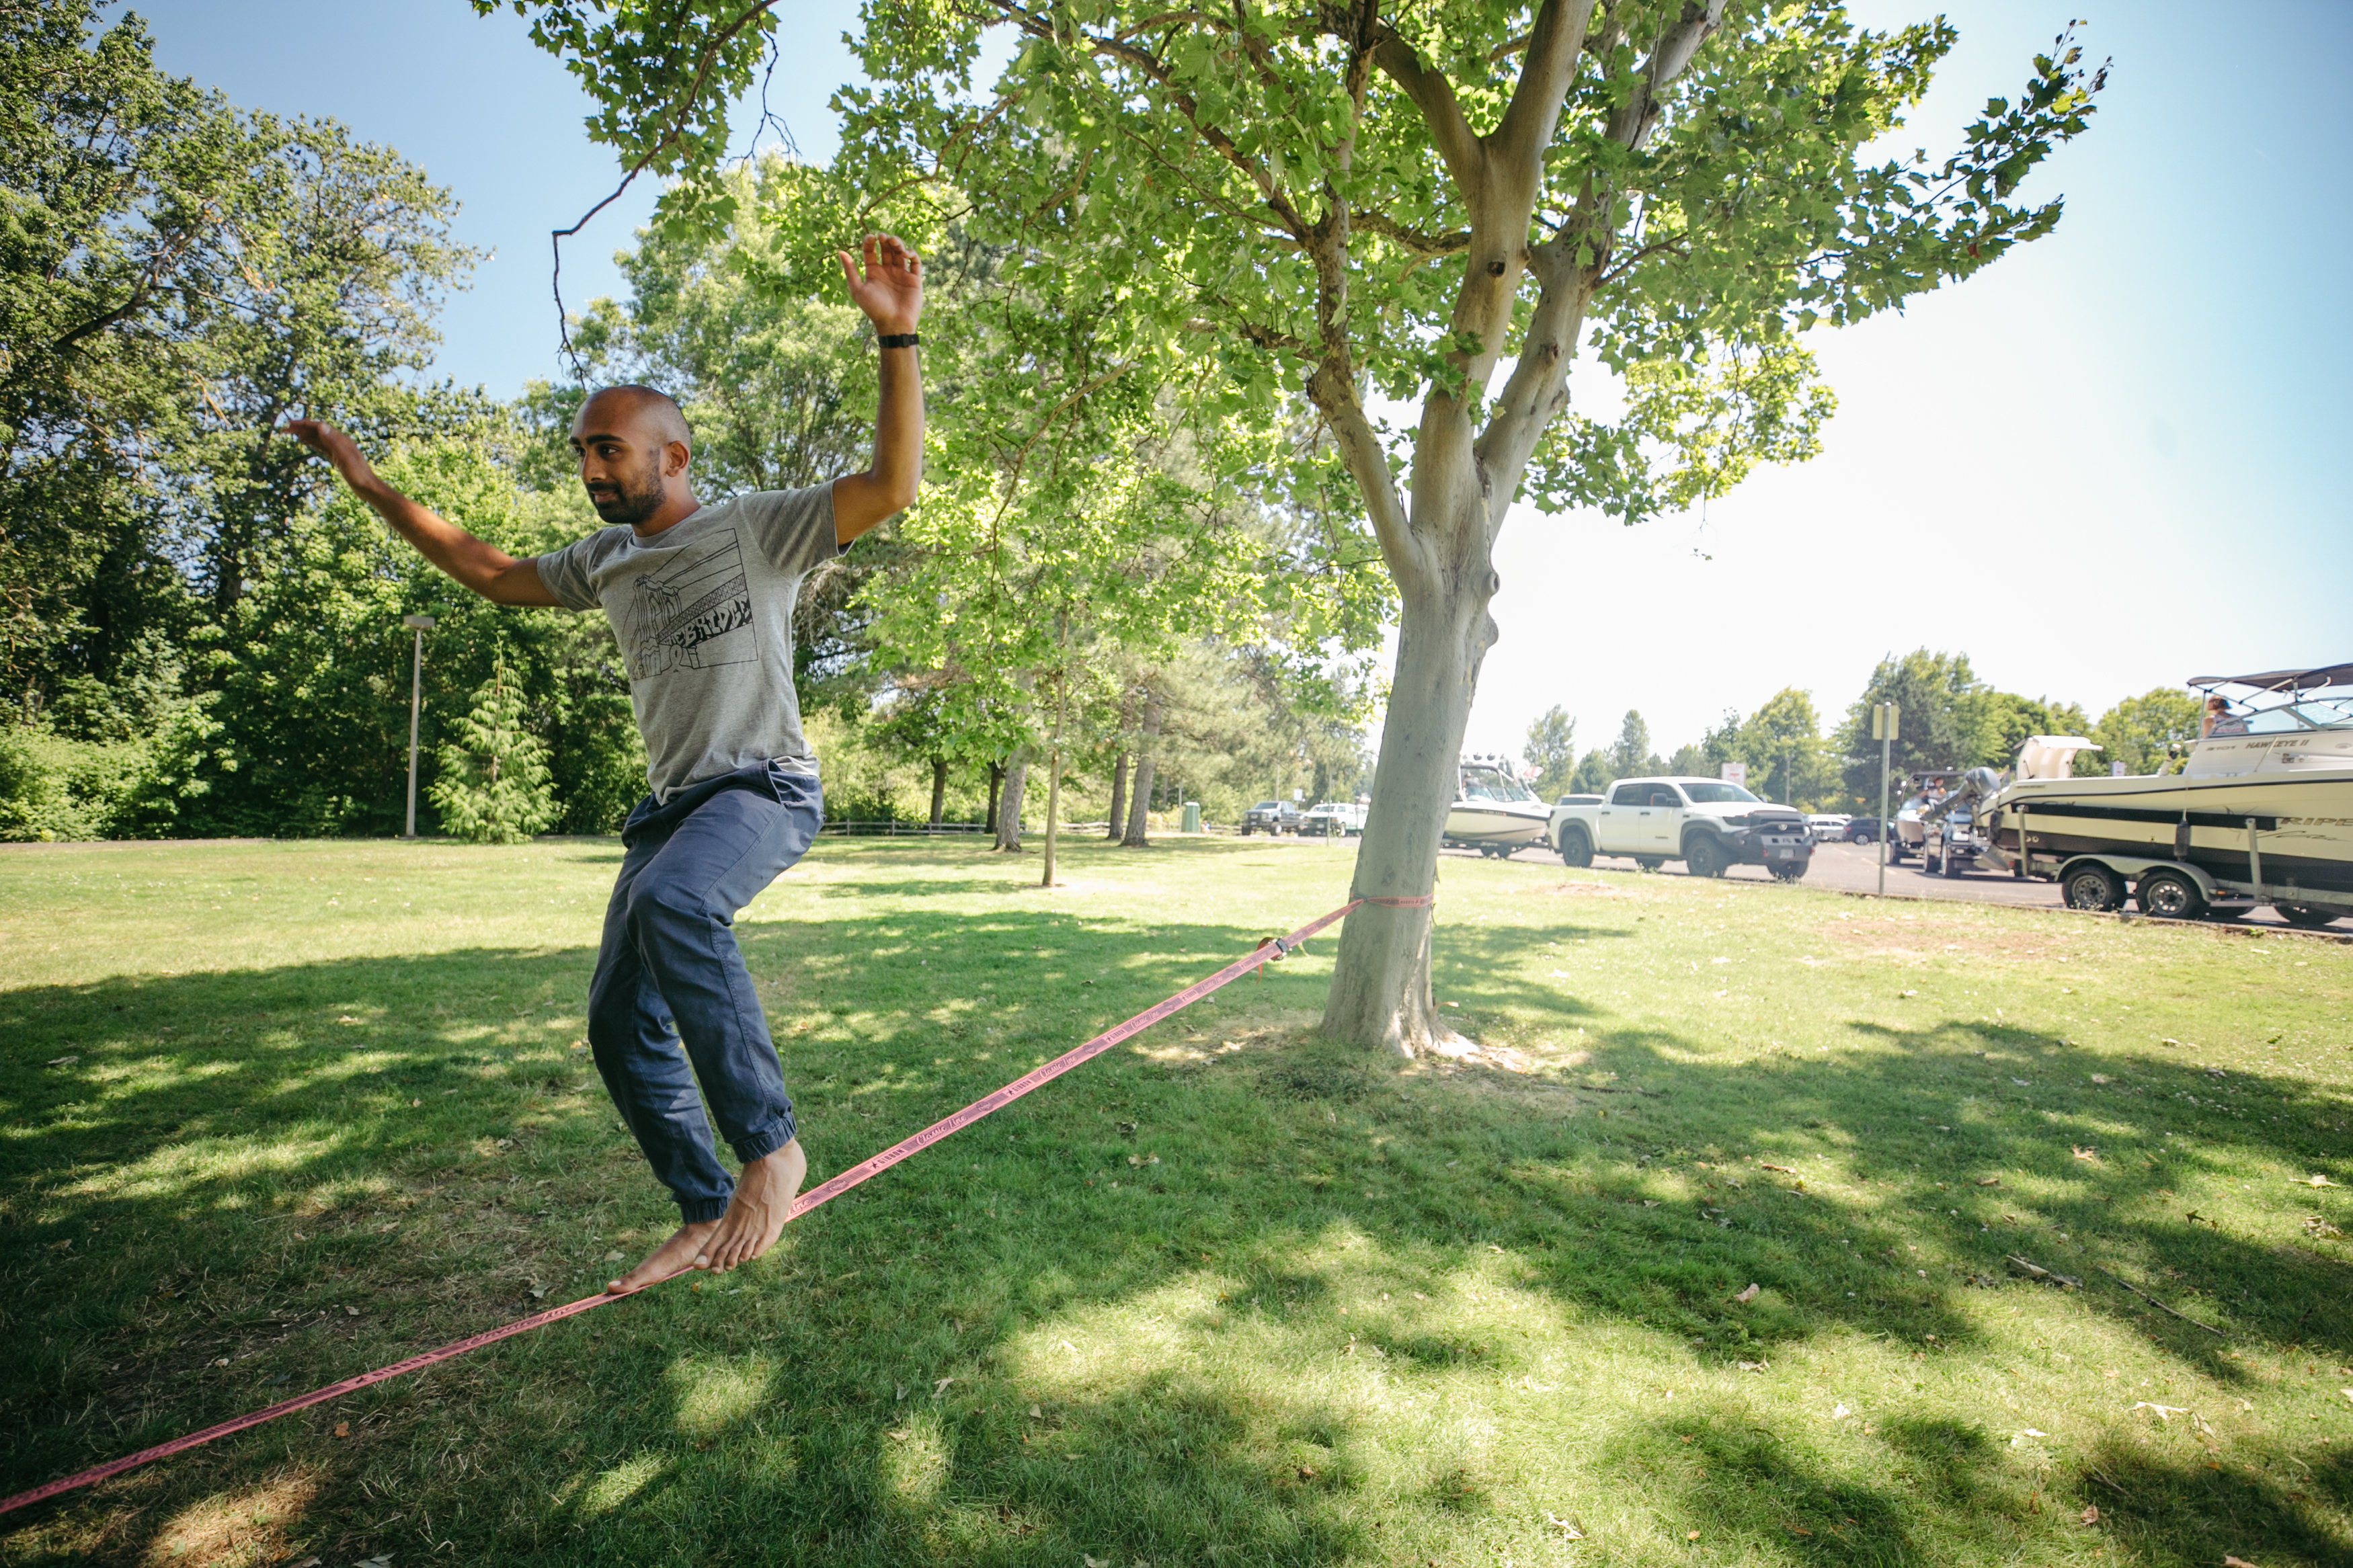 A man balances on a slack line connected to a tree in a park